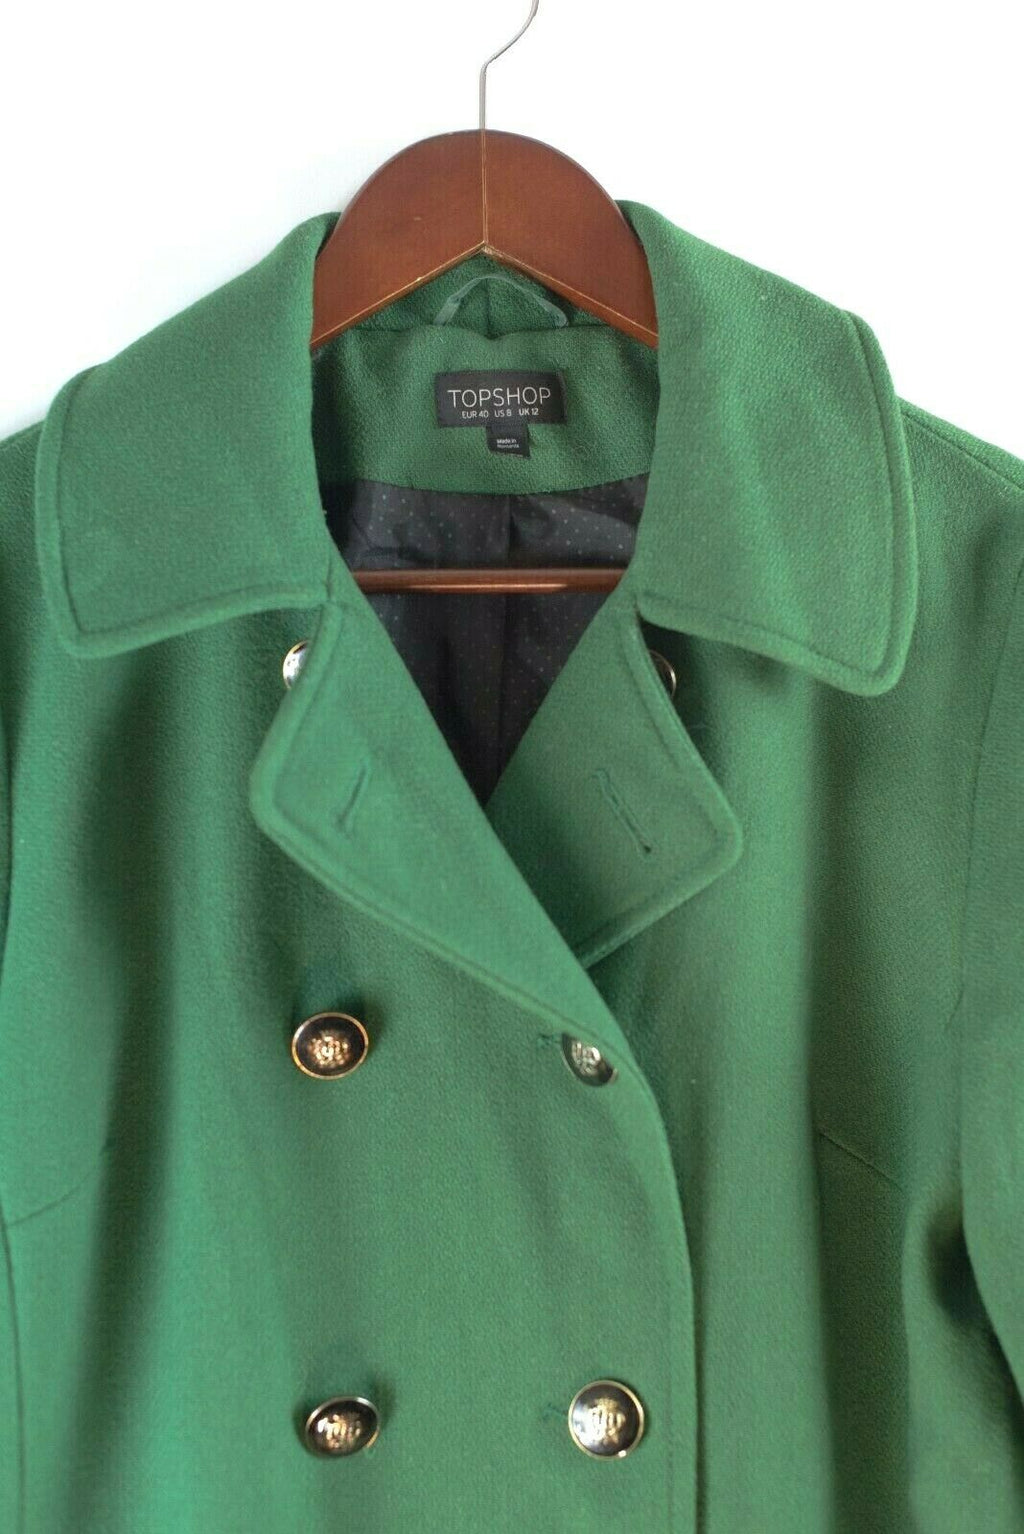 Topshop Womens Size 8 Green Coat Oversized Pockets Duster Ribbon Neck Tie Jacket